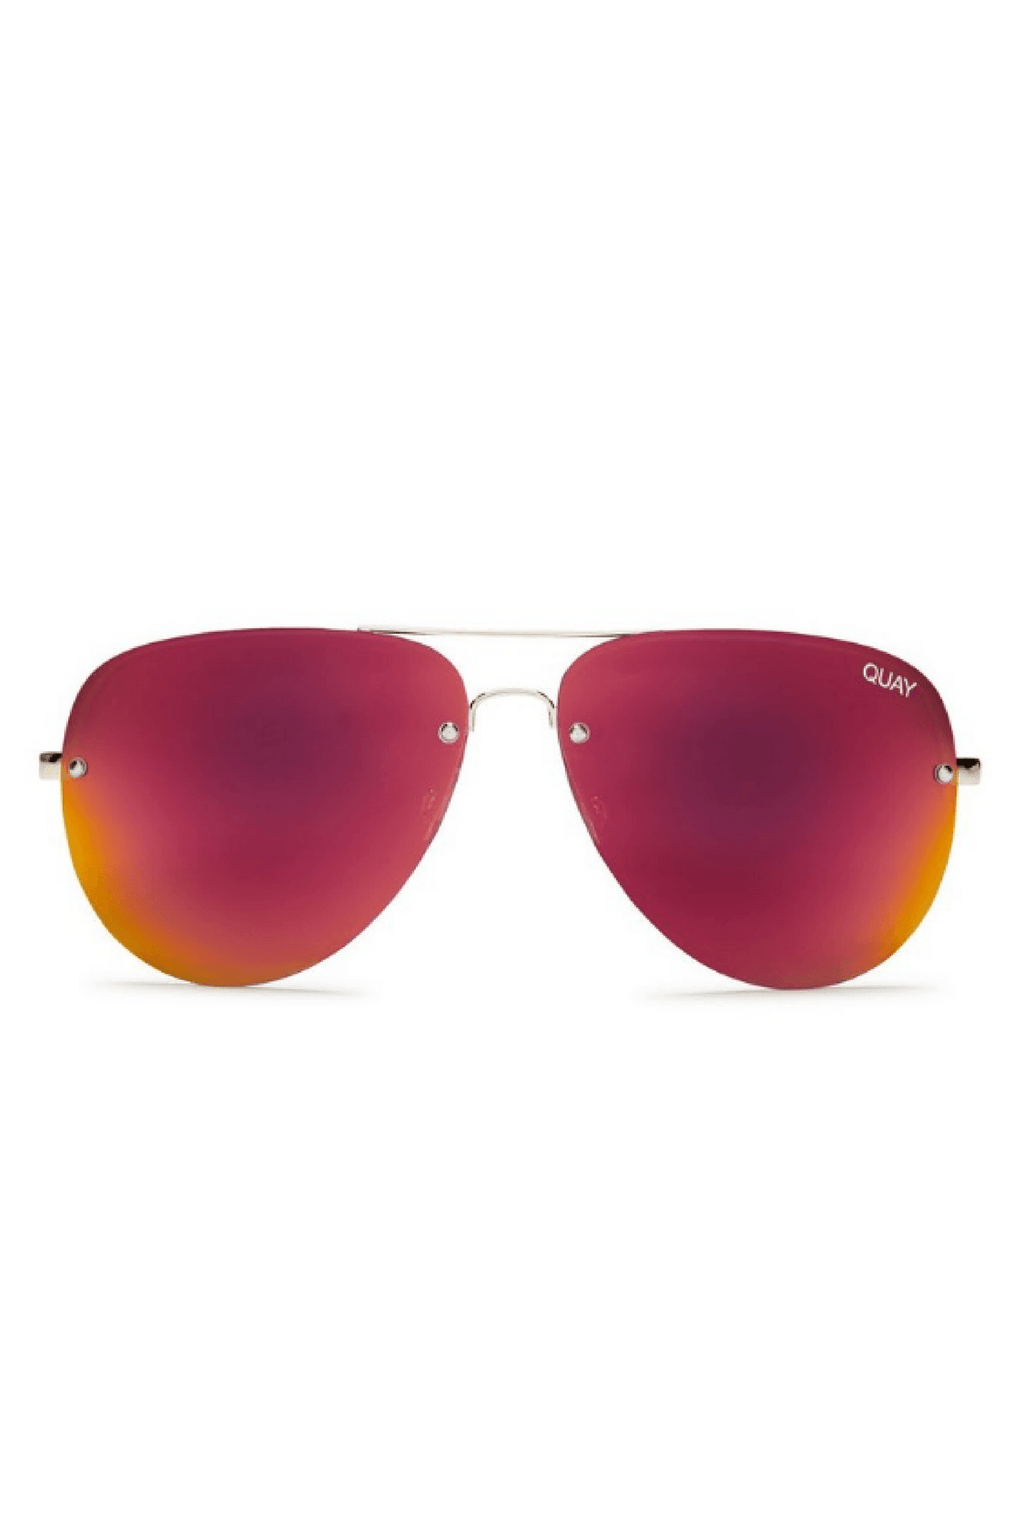 Muse Sunglasses in Red Mirror